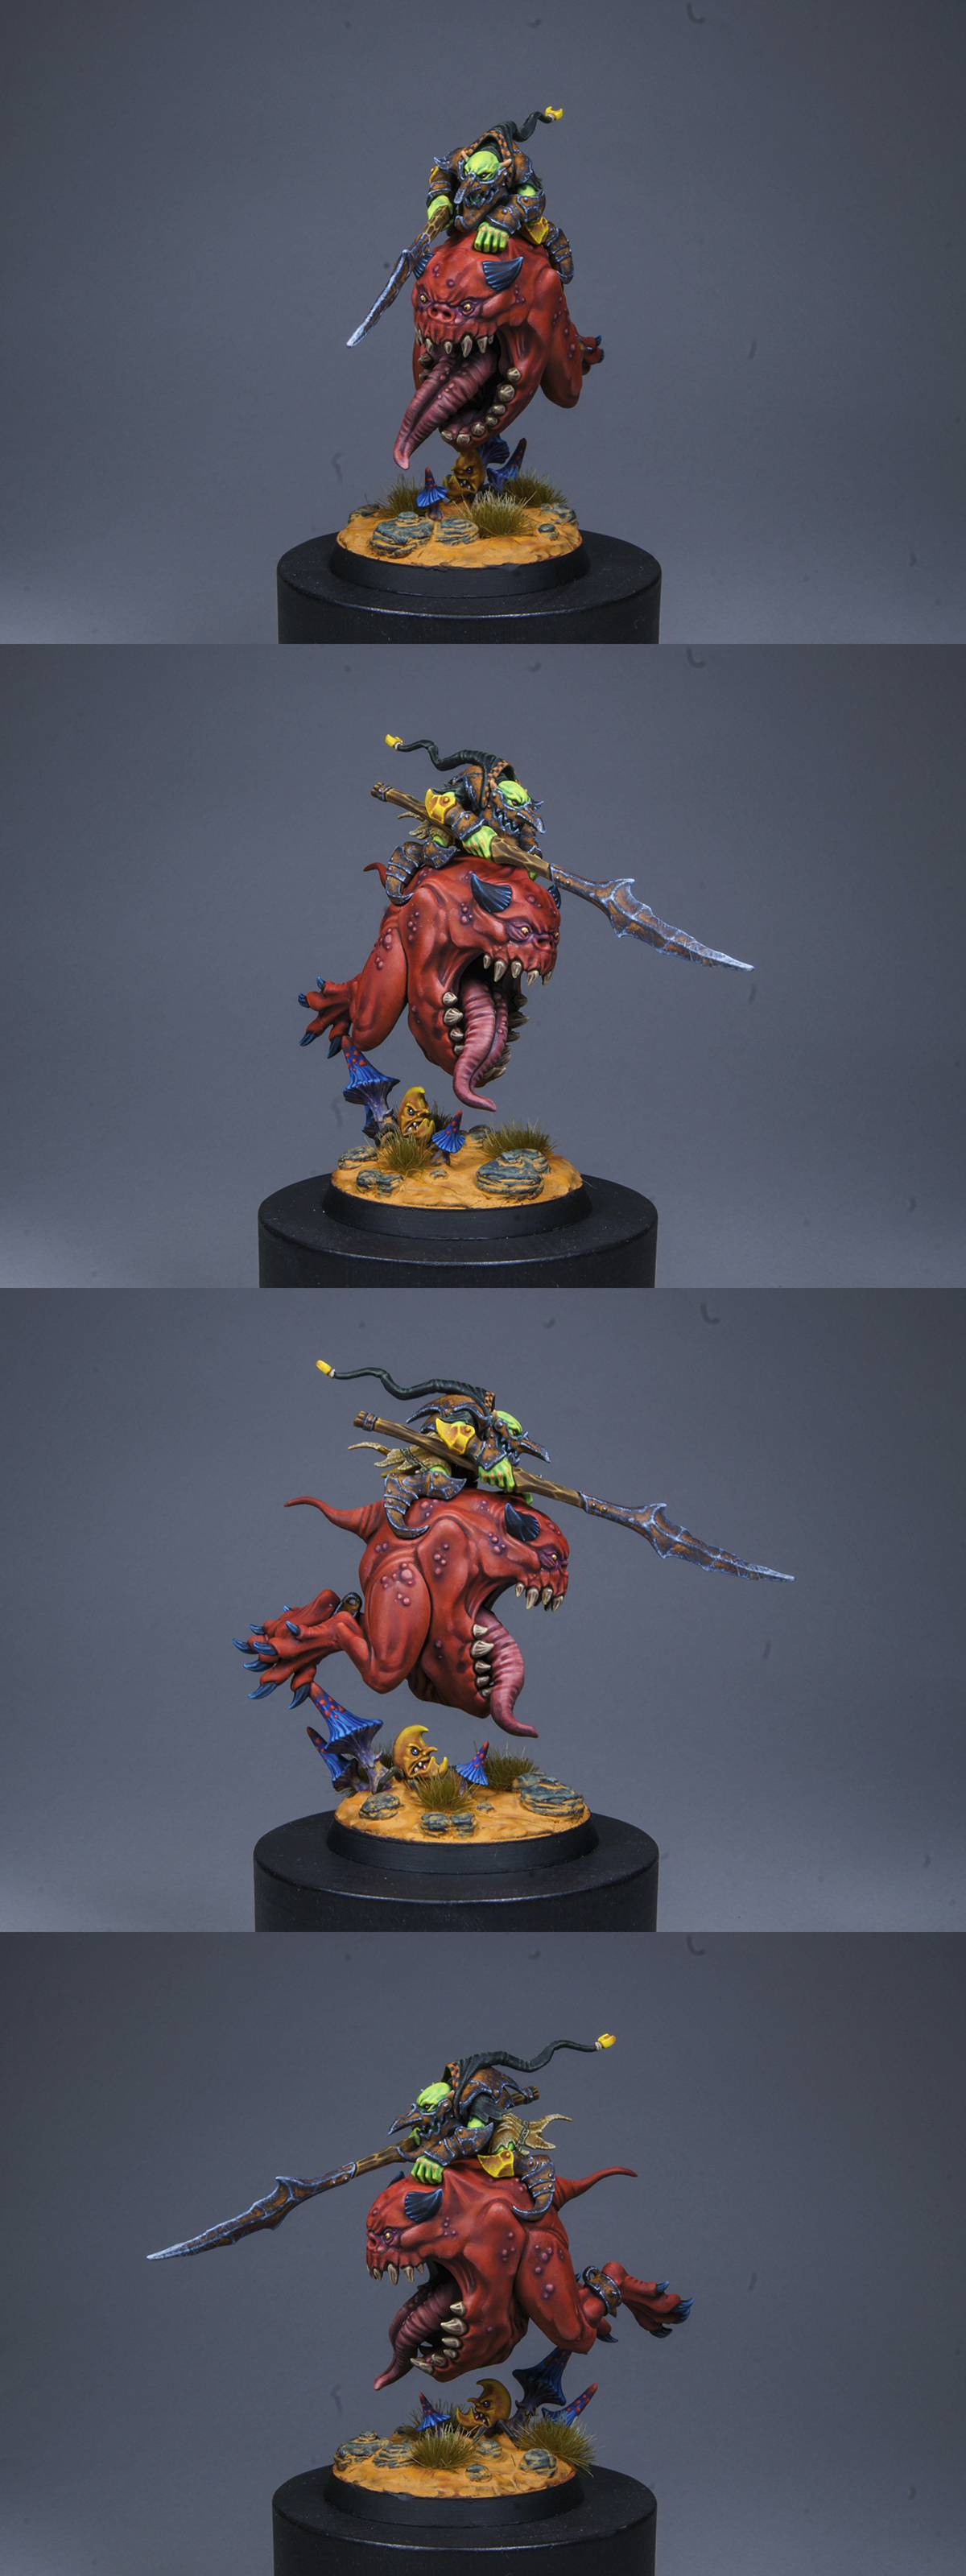 Loonboss on Giant cave Squig.